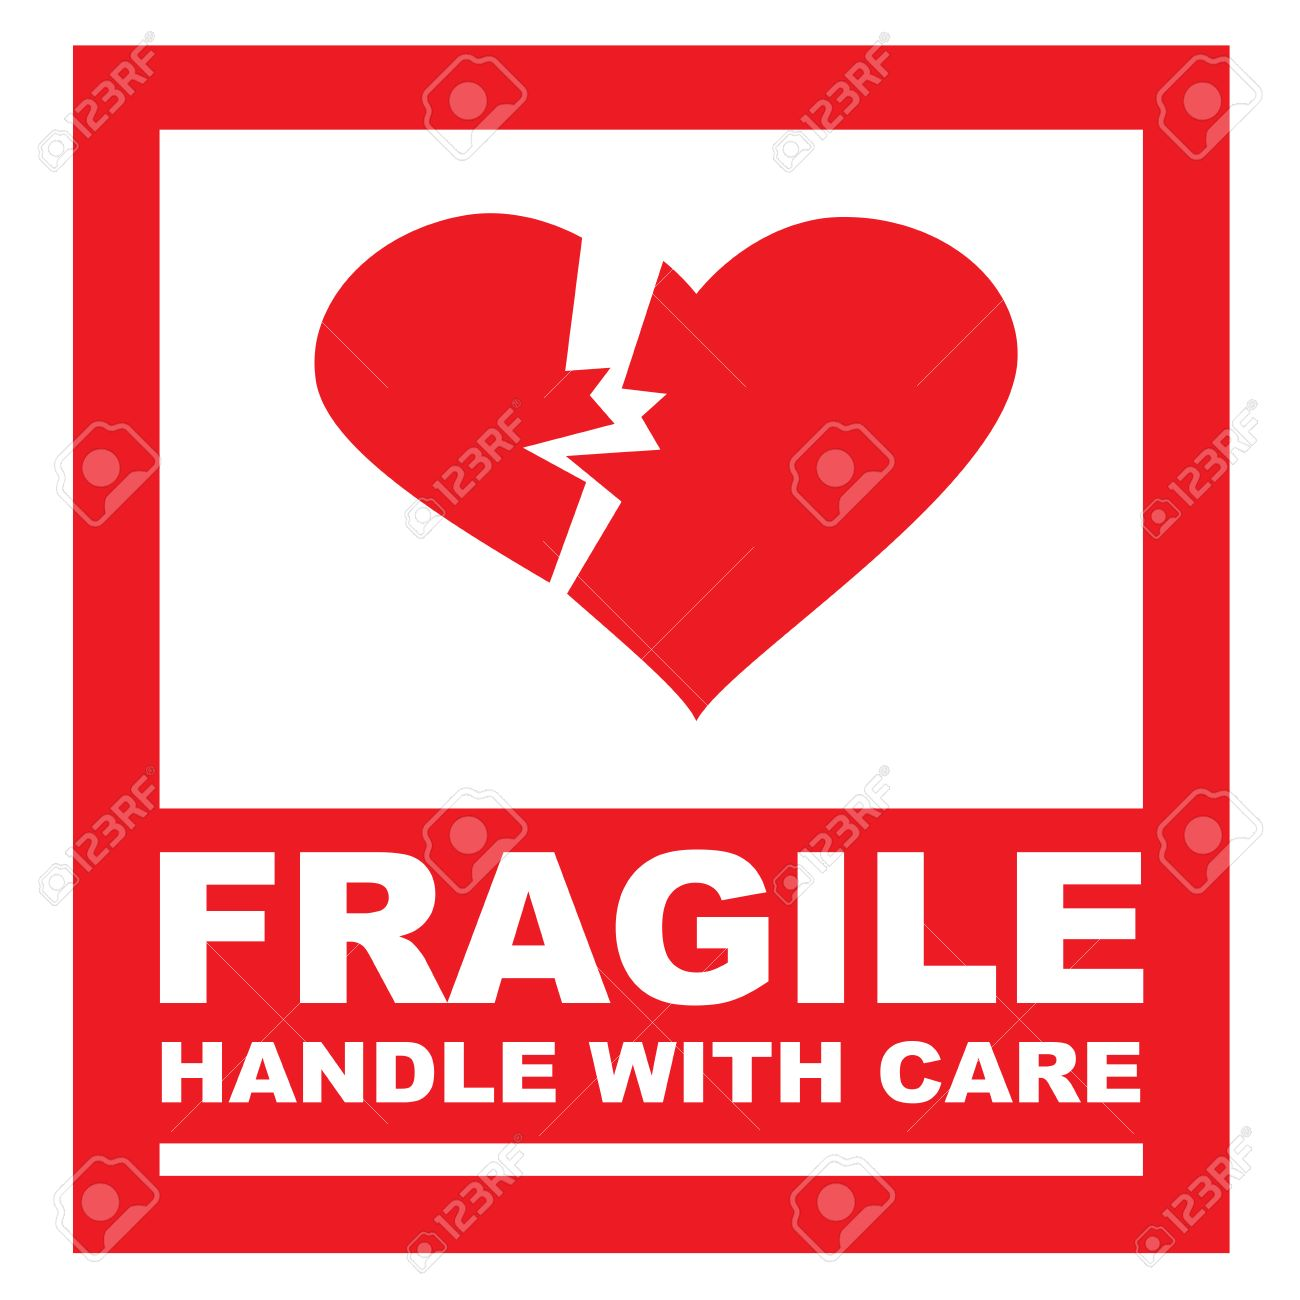 Fragile handle with care sticker the box is replaced by a heart stock